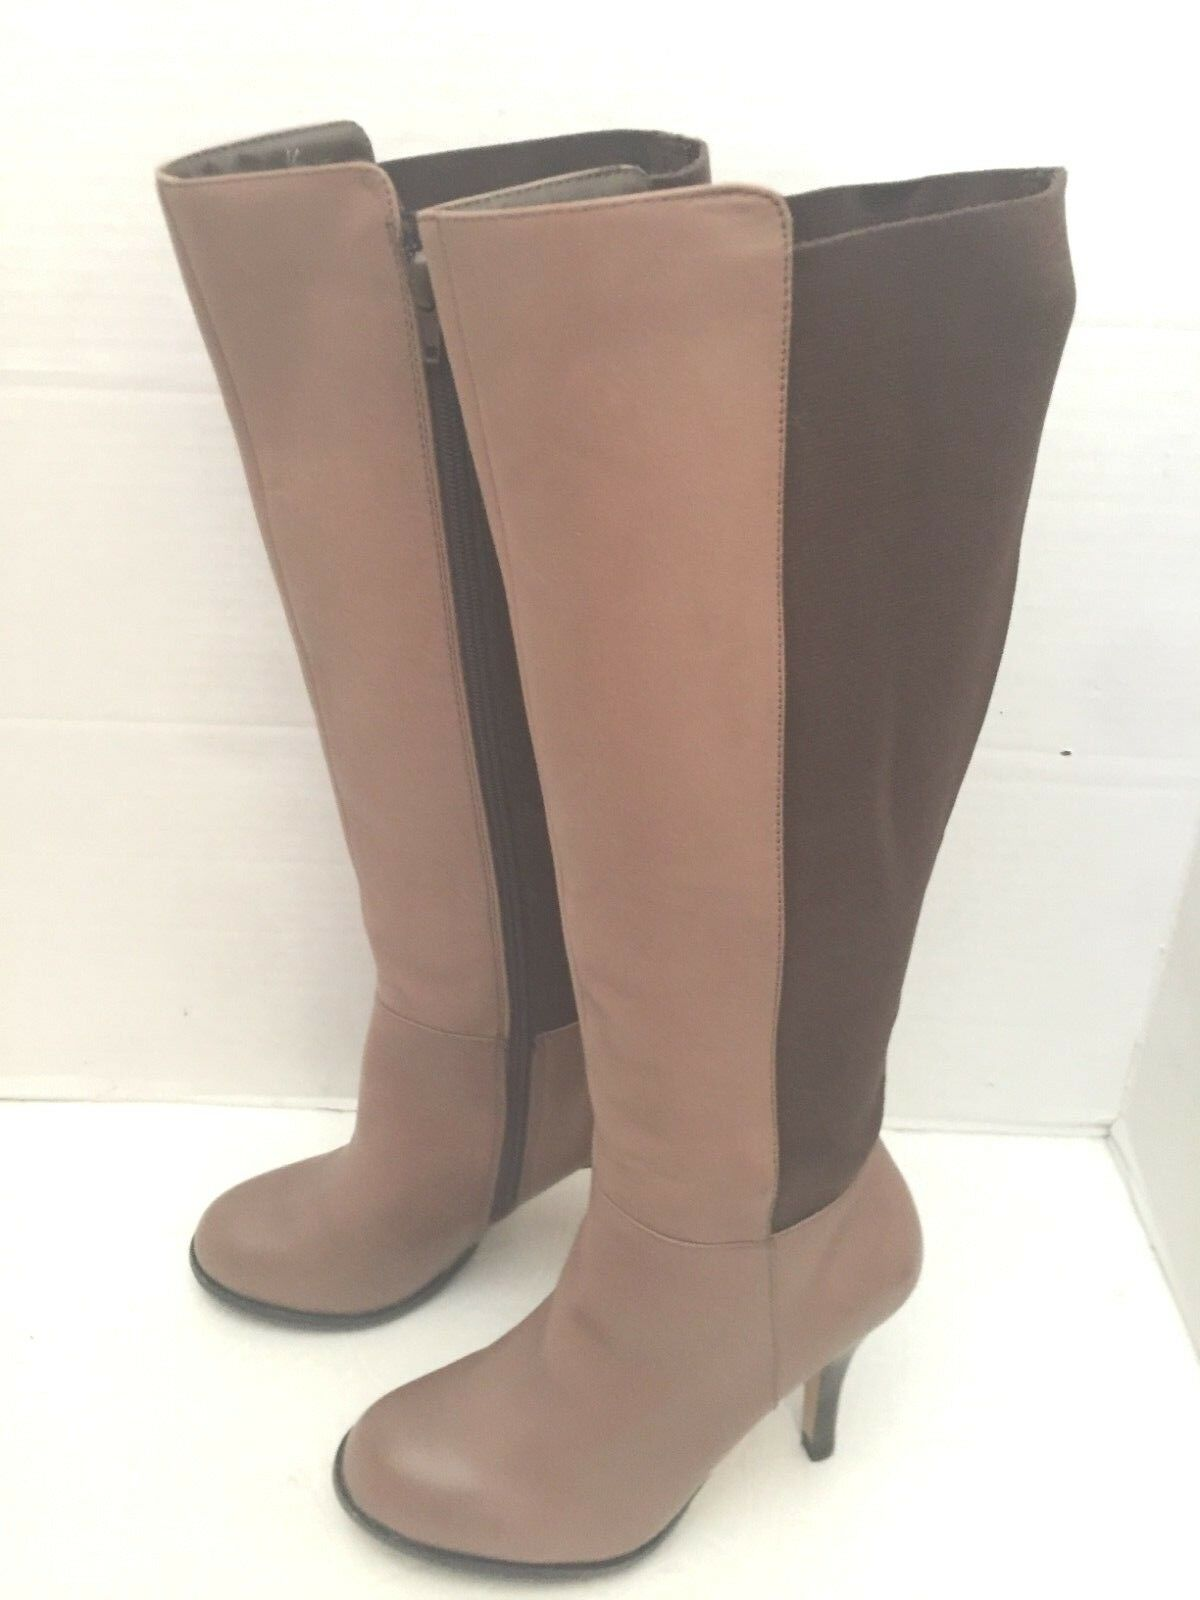 Very Volatile Vanity Mix Crepe Media Braun Leder Stretch Crepe Mix Knee High Stiefel 6 9a3a76